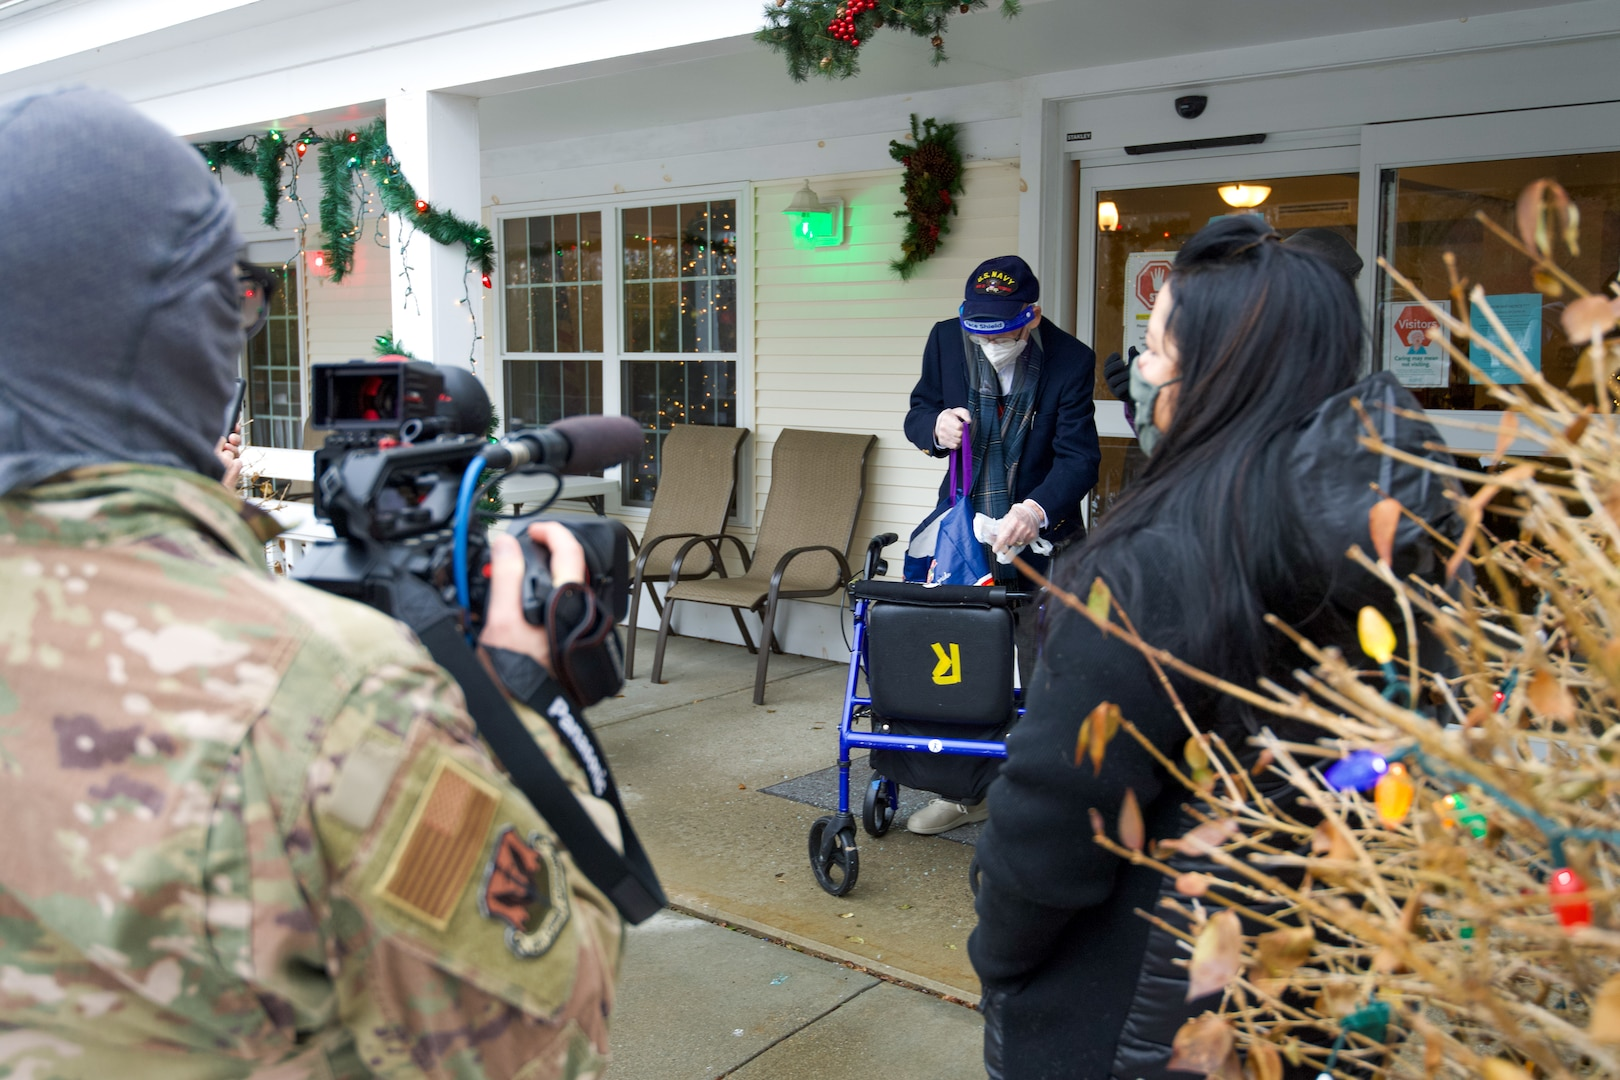 World War II veteran Lenny Roberge, Vermont's oldest living veteran, prepares to hand out to Airmen present apple pie he baked in appreciation for receiving a flag flown in the F-35, at a small ceremony outside his nursing home in South Burlington, Vt., Dec. 22, 2020. In order to honor Roberge, Airmen from the 158th Fighter Wing had a flag flown in an F-35 during a combat training sortie over the mountains of Vermont and New York. (U.S. Air National Guard photo by Senior Master Sgt. Michael Davis)